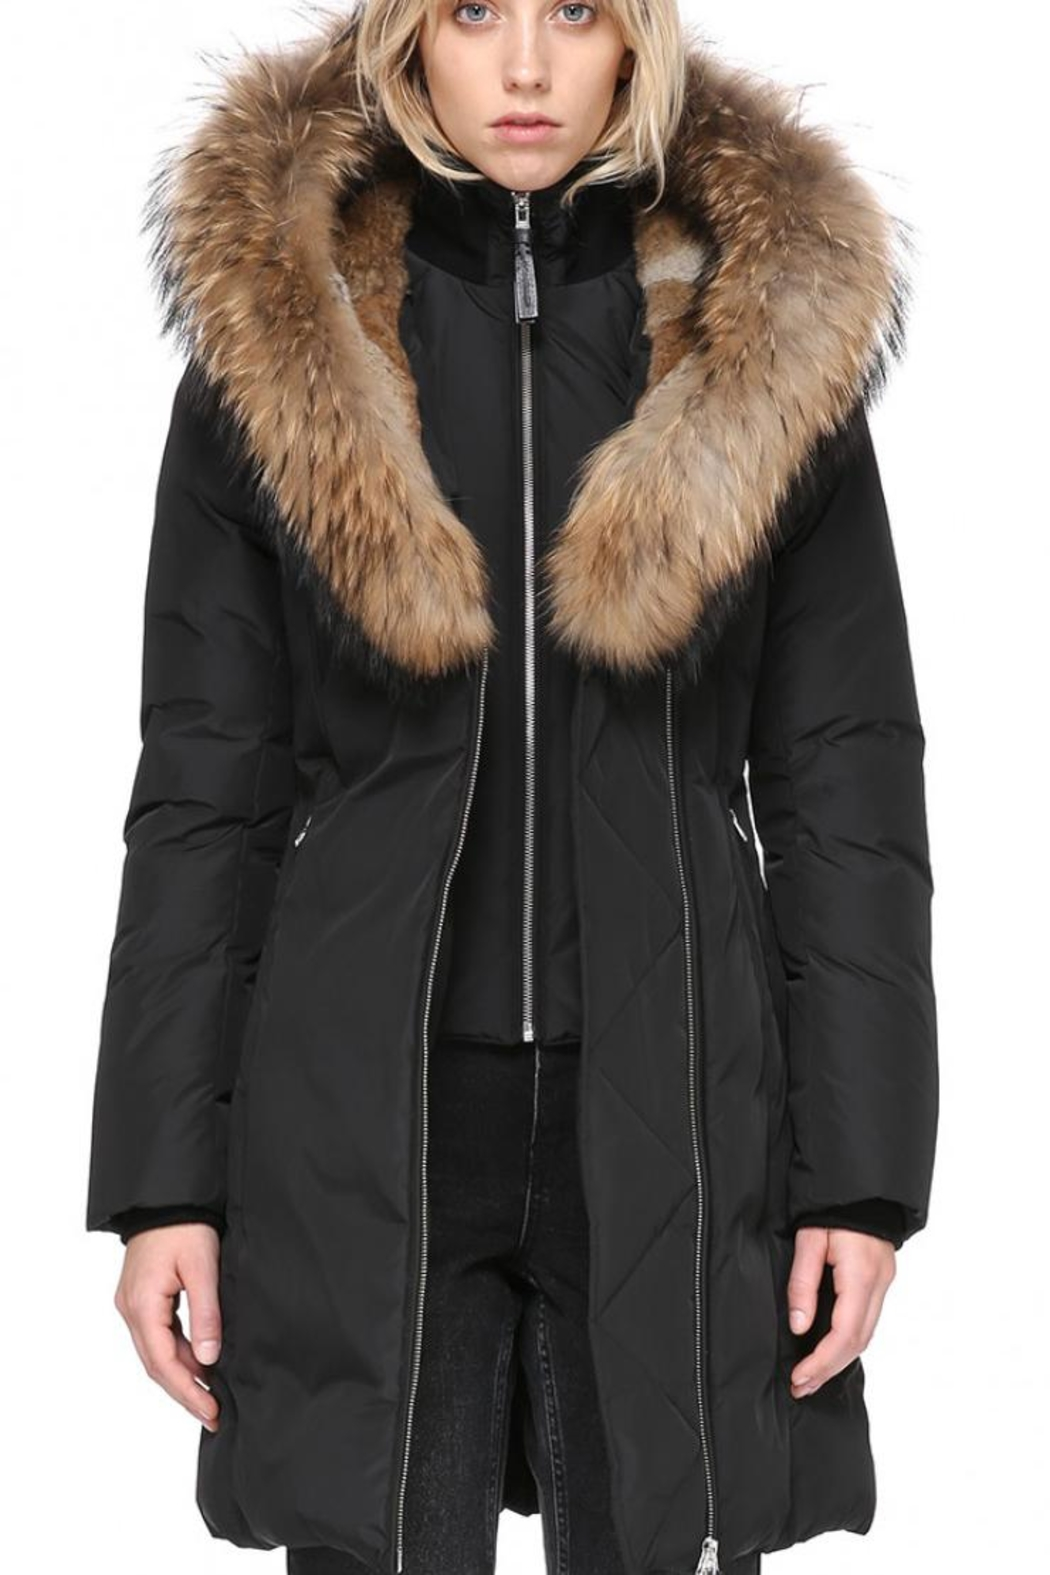 Mackage Trish Coat From Toronto By Room 29 Shoptiques